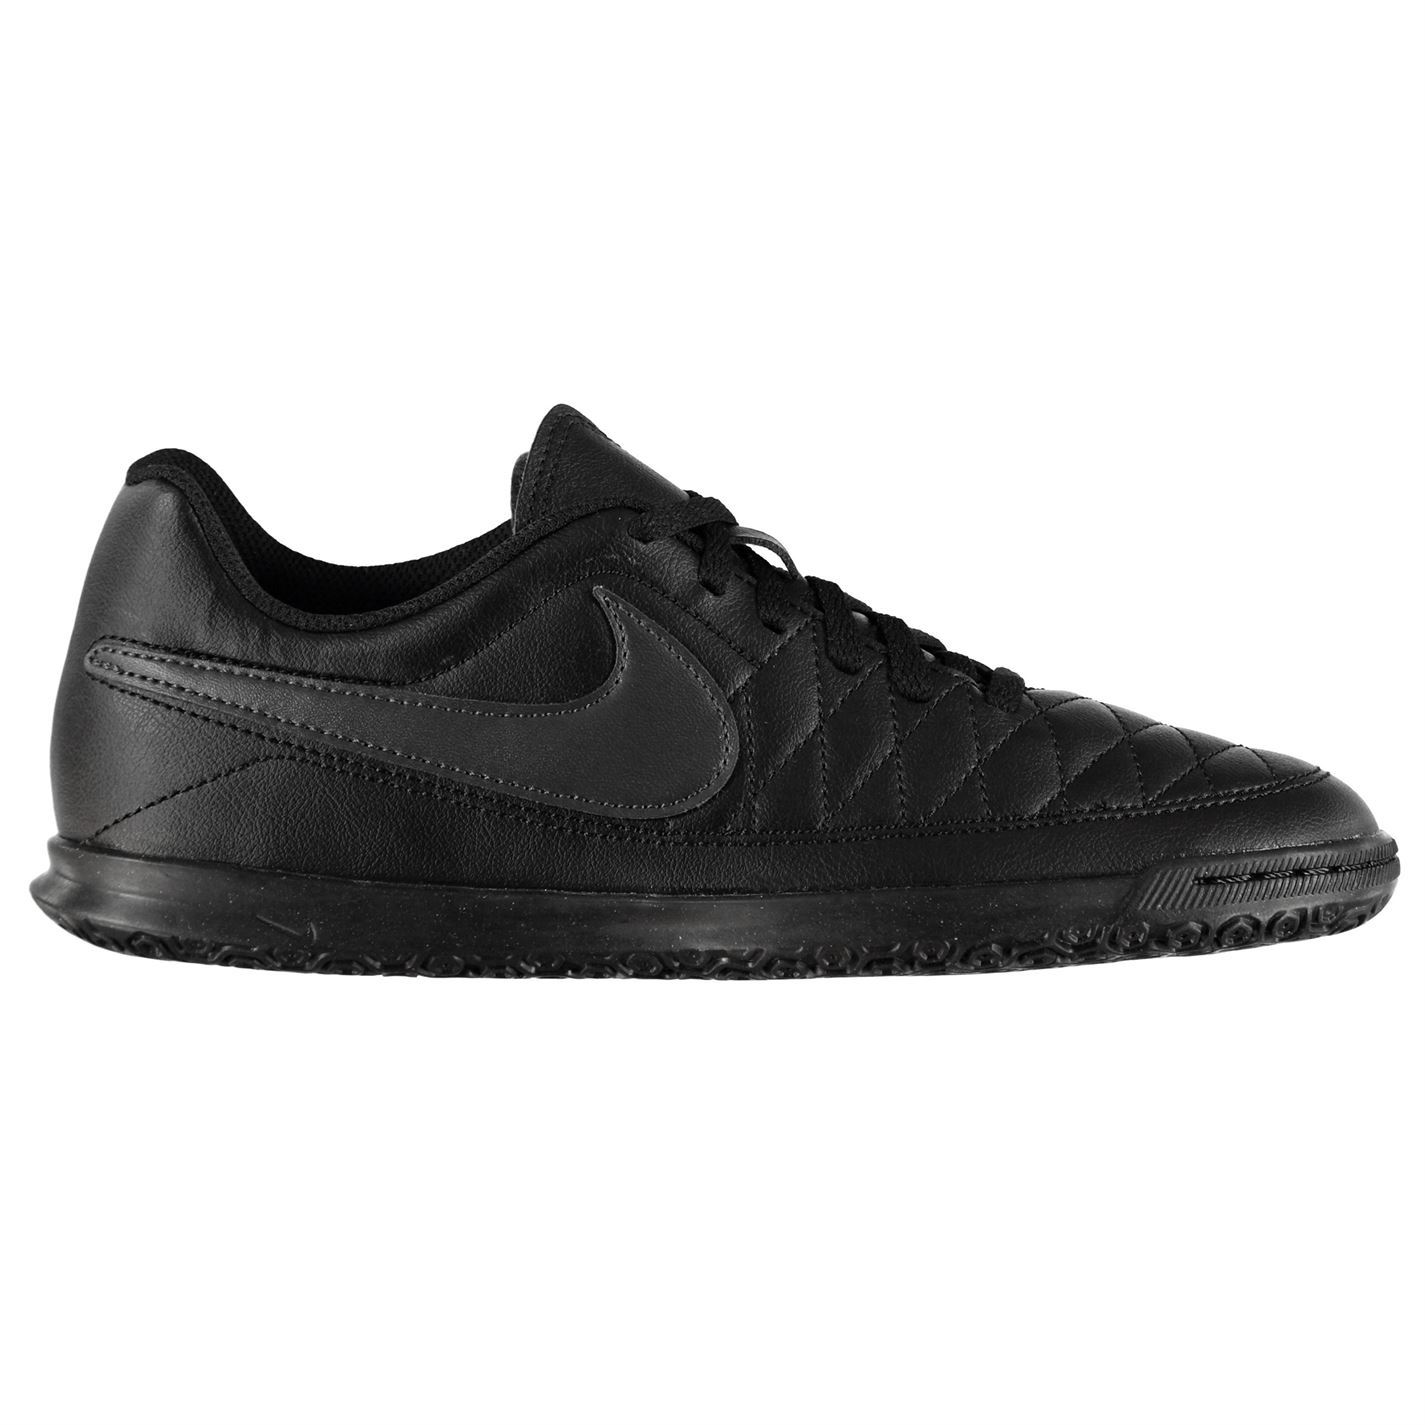 Nike-majestry-Indoor-Football-Baskets-Pour-Homme-Football-Futsal-Chaussures-Baskets-Bottes miniature 5